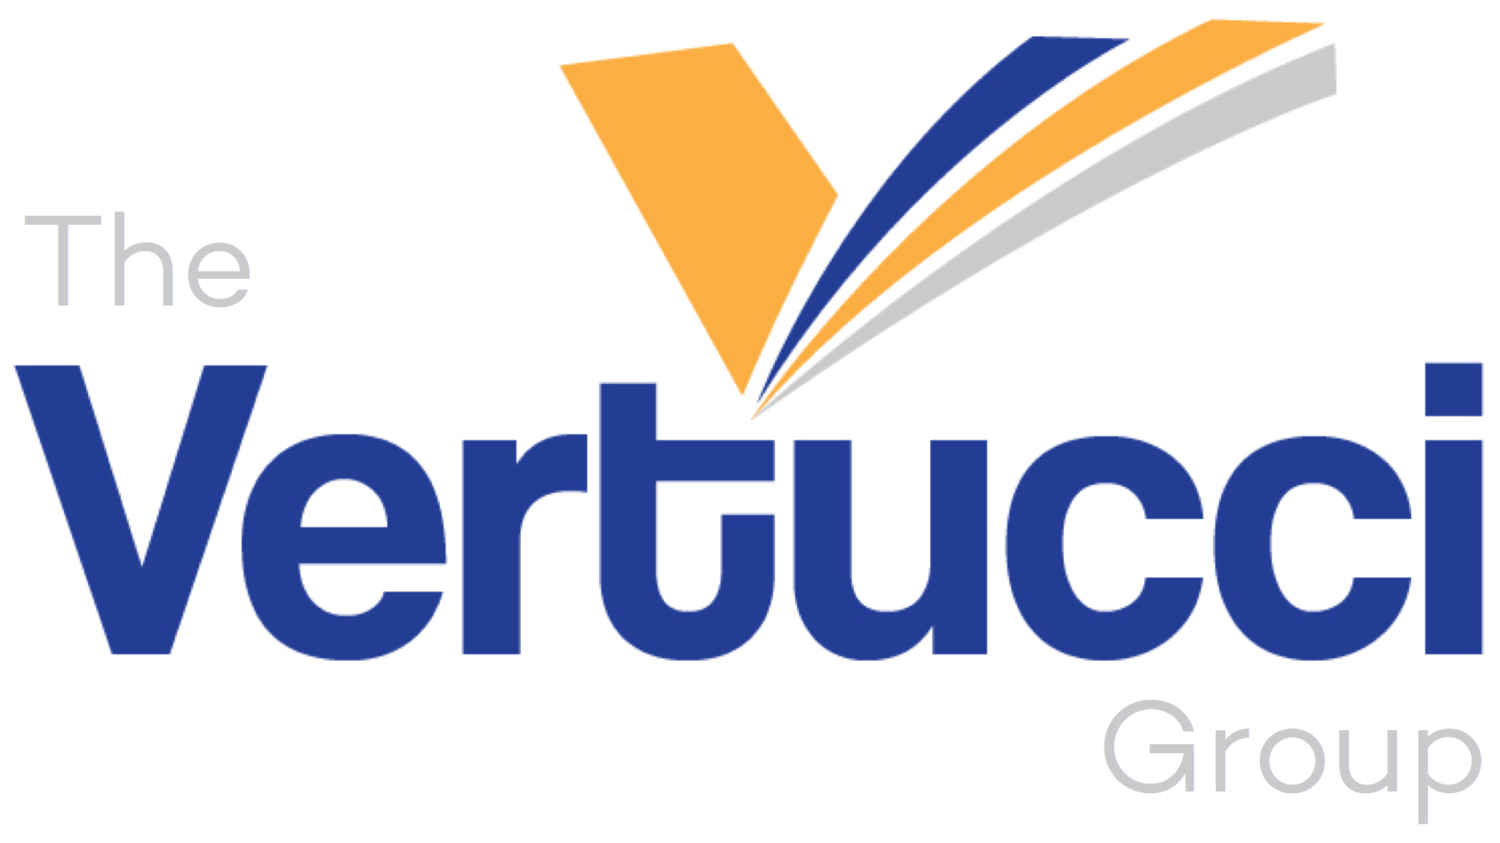 The Vertucci Group